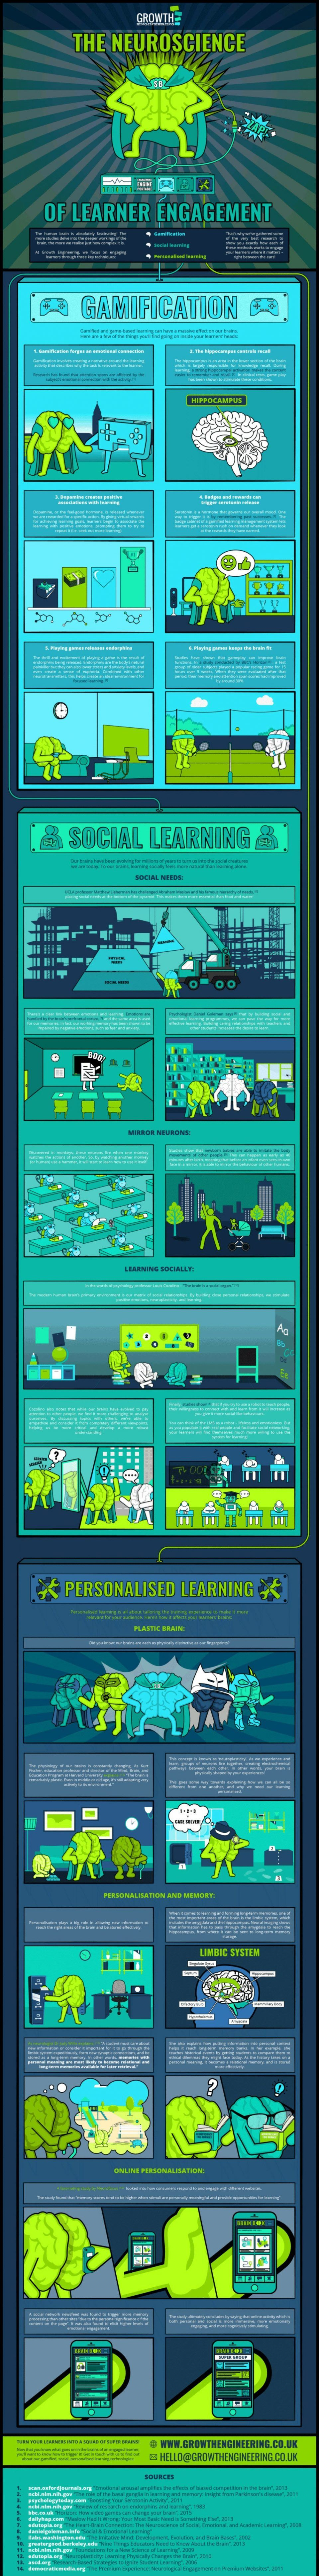 The Neuroscience of Learner Engagement Infographic